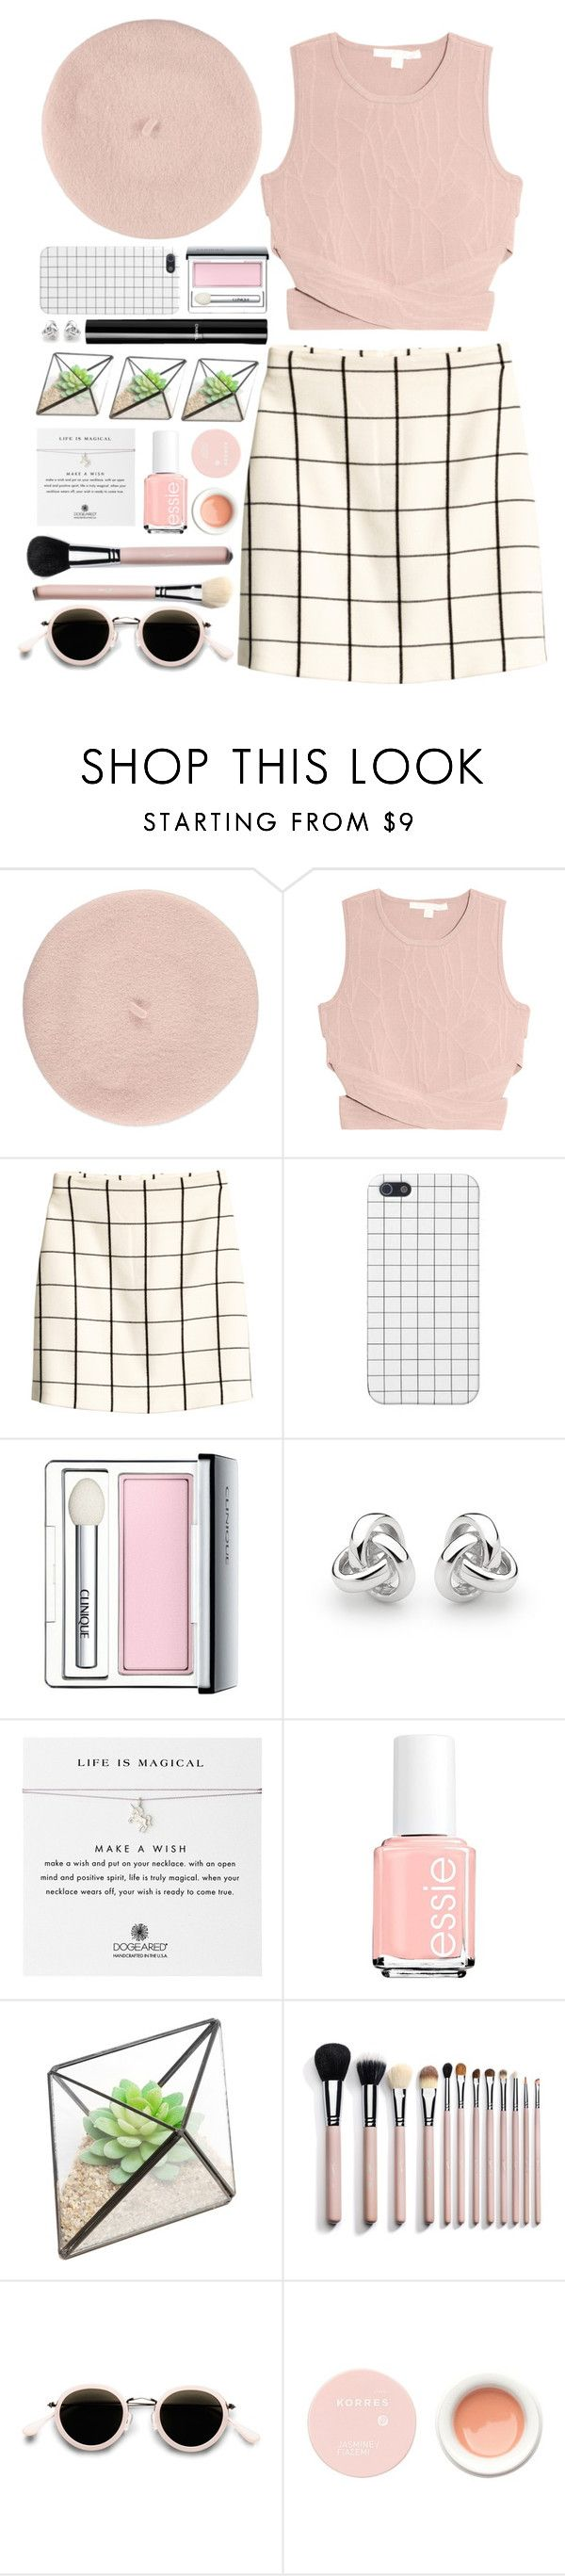 """""""#718 Diane"""" by blueberrylexie ❤ liked on Polyvore featuring Forever 21, Jonathan Simkhai, H&M, Clinique, Chanel, Georgini, Dogeared, Essie, Acne Studios and Korres"""